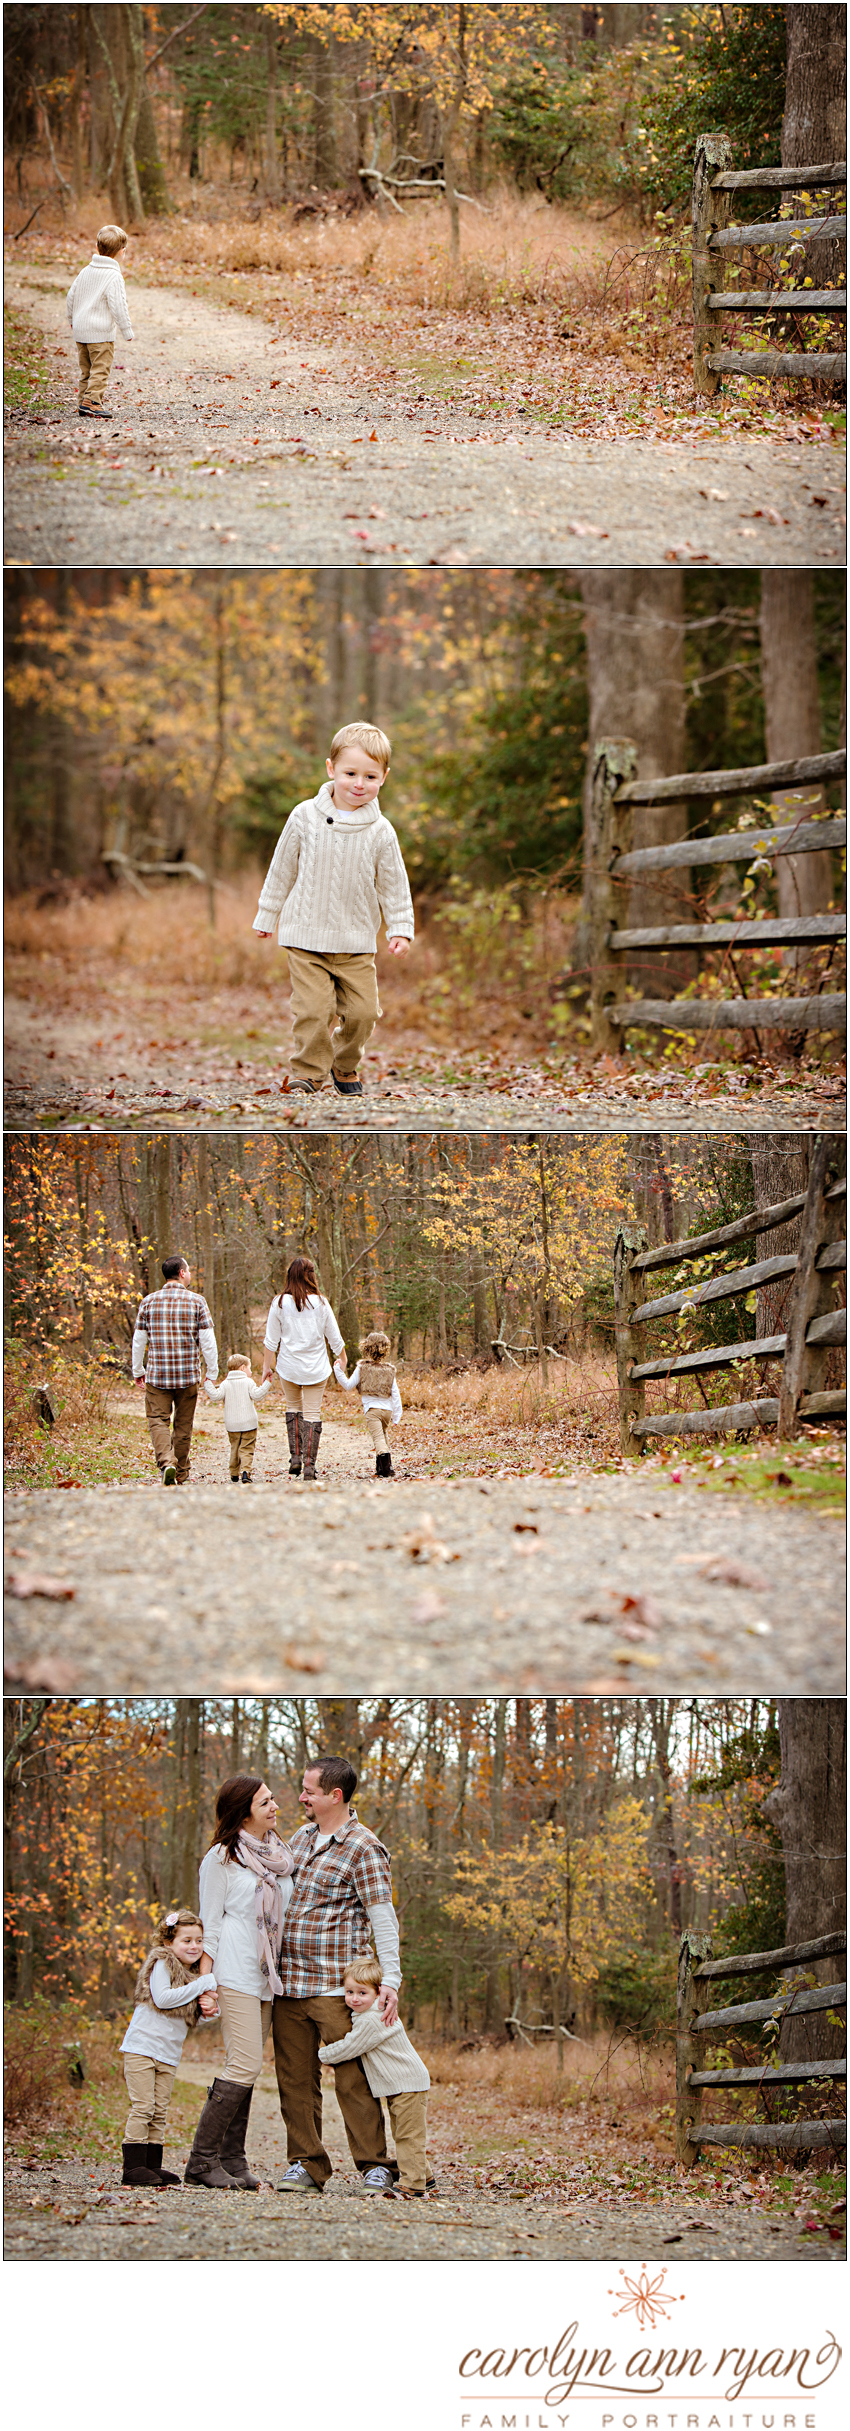 Marvin NC Family Photographer Carolyn Ann Ryan photographs an adorable Fall family session